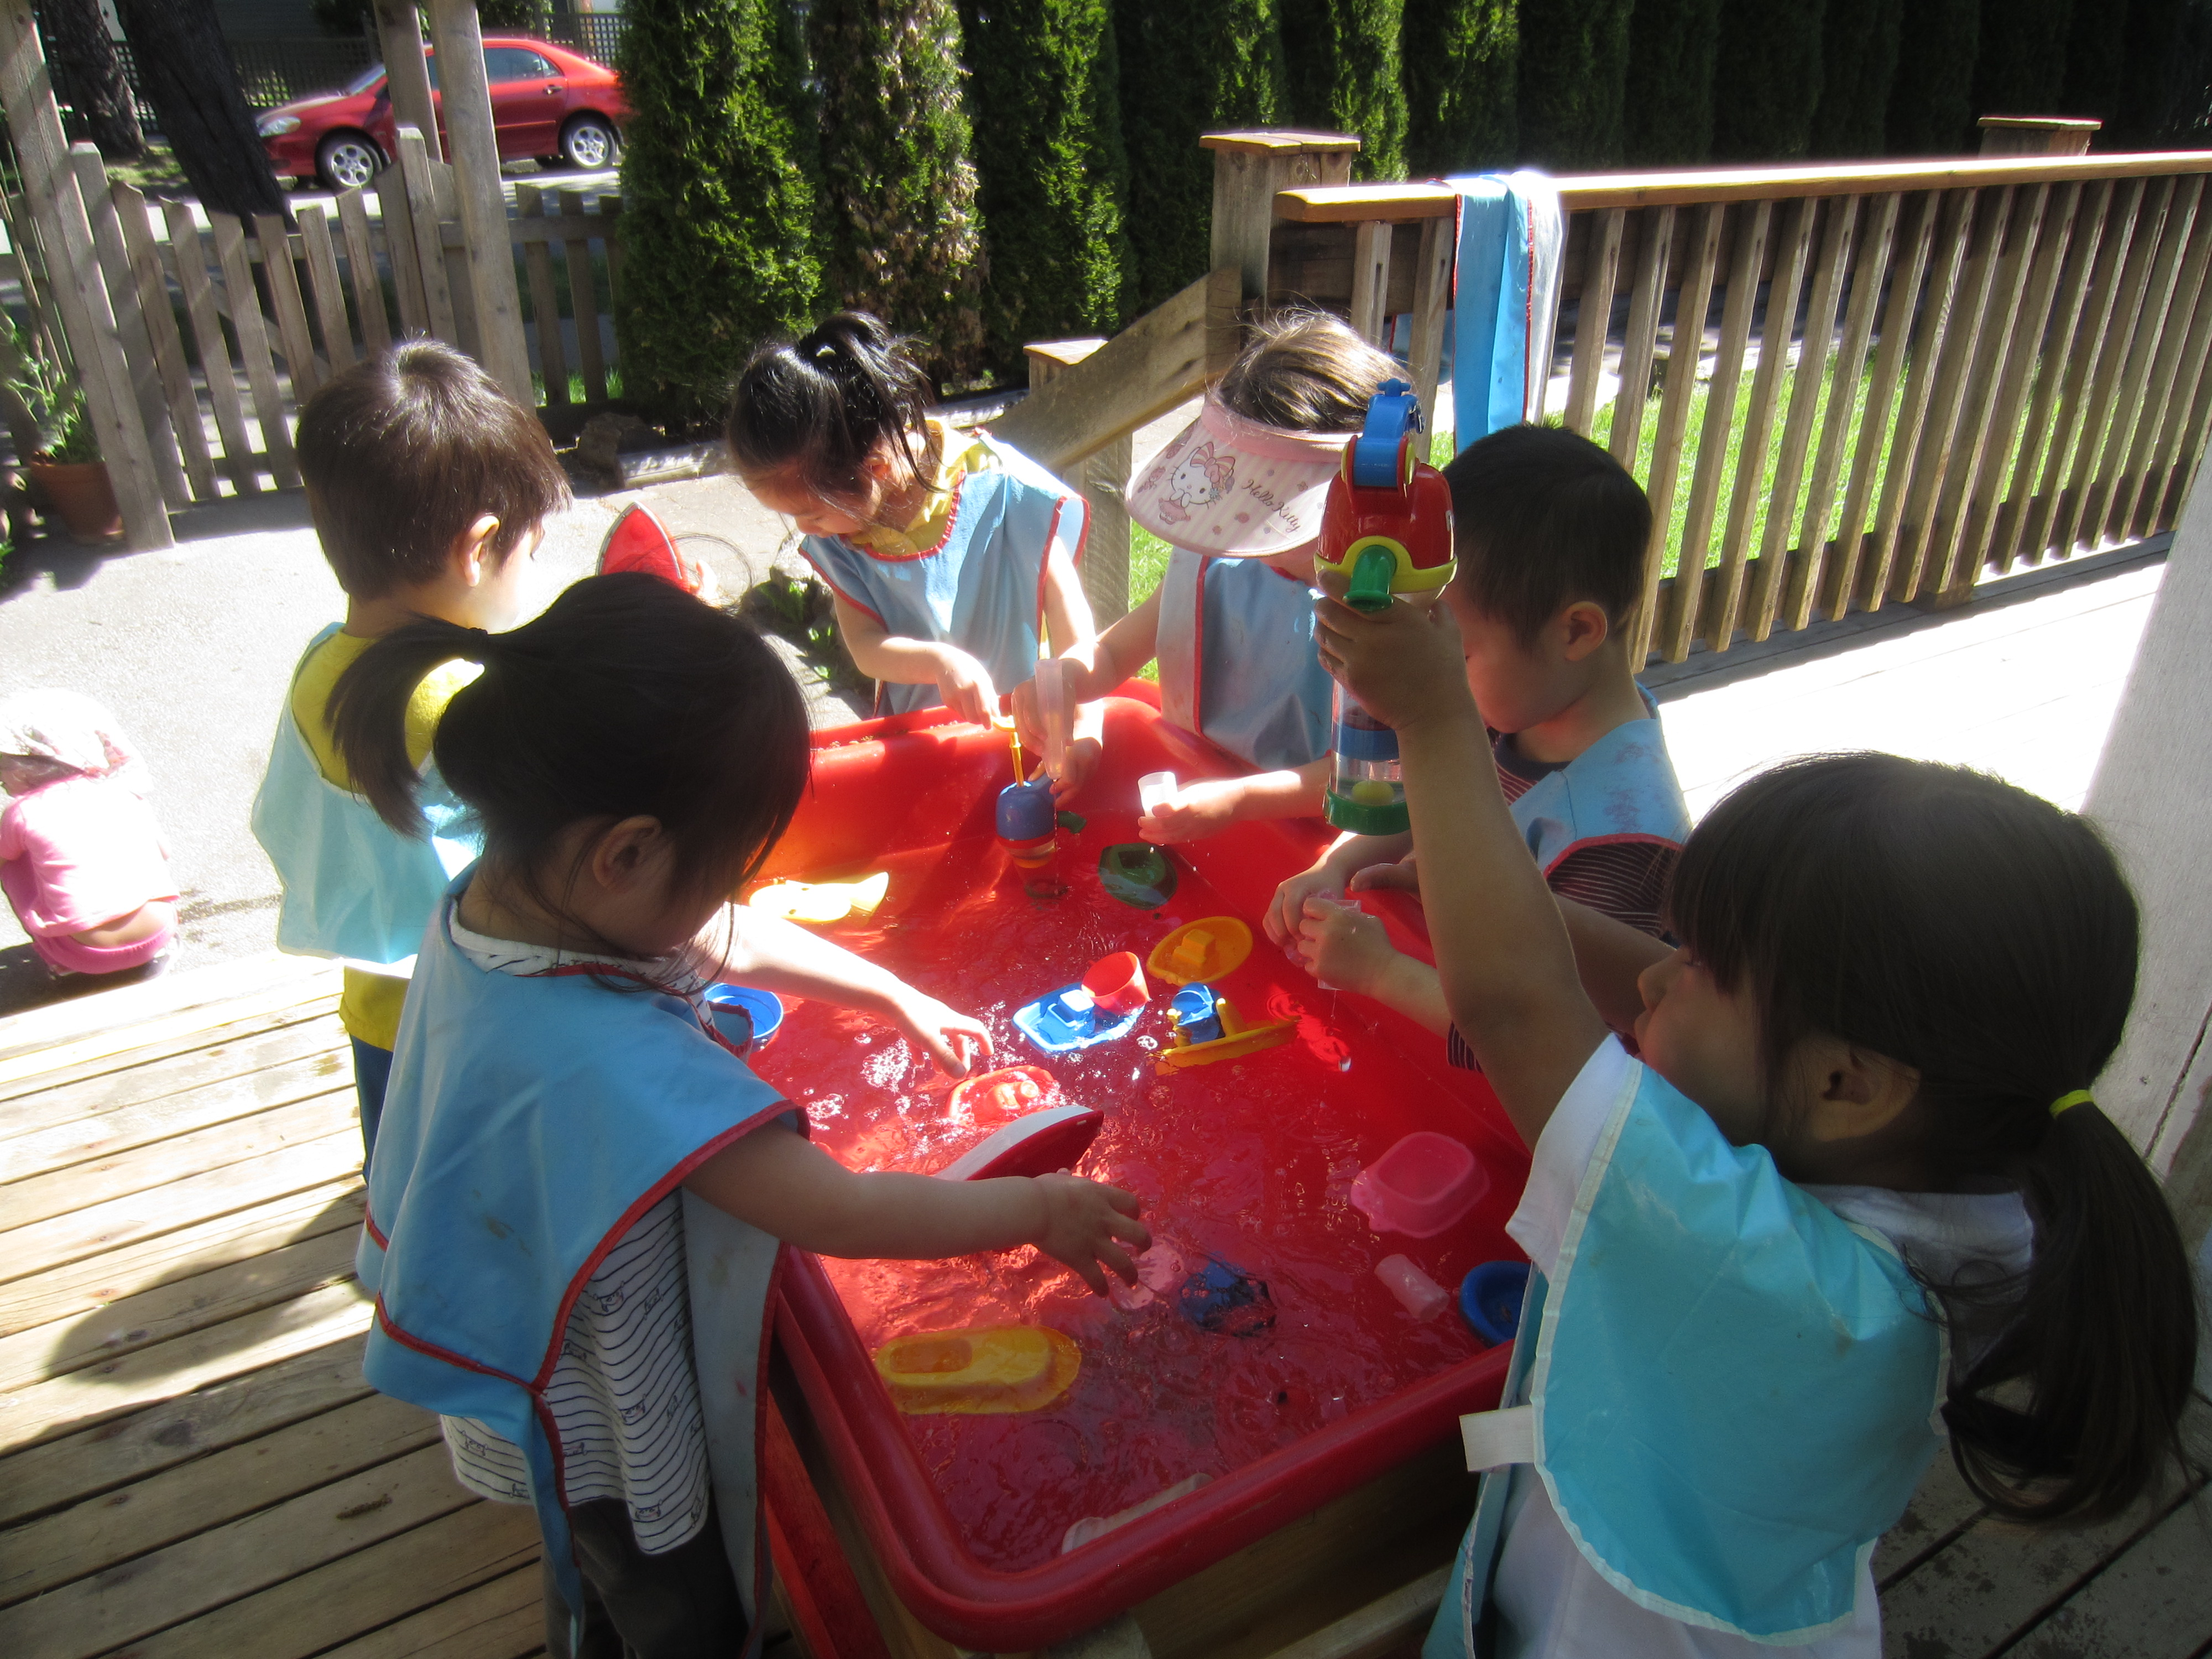 Six children playing around a large tub filled with water and floating toys.